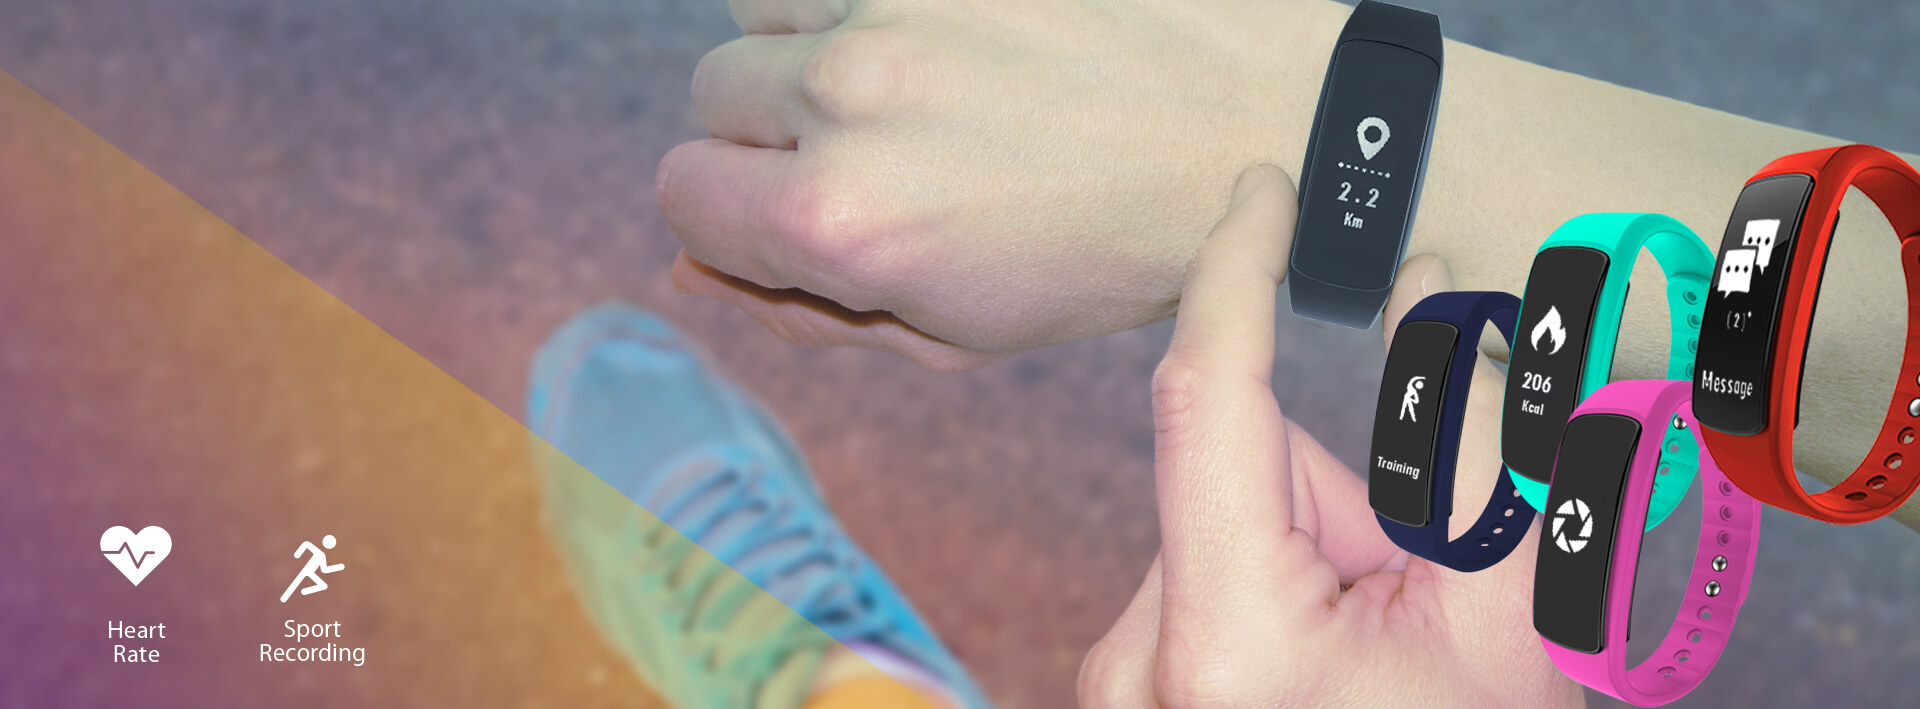 NGM_FitBand_BLOCCO2